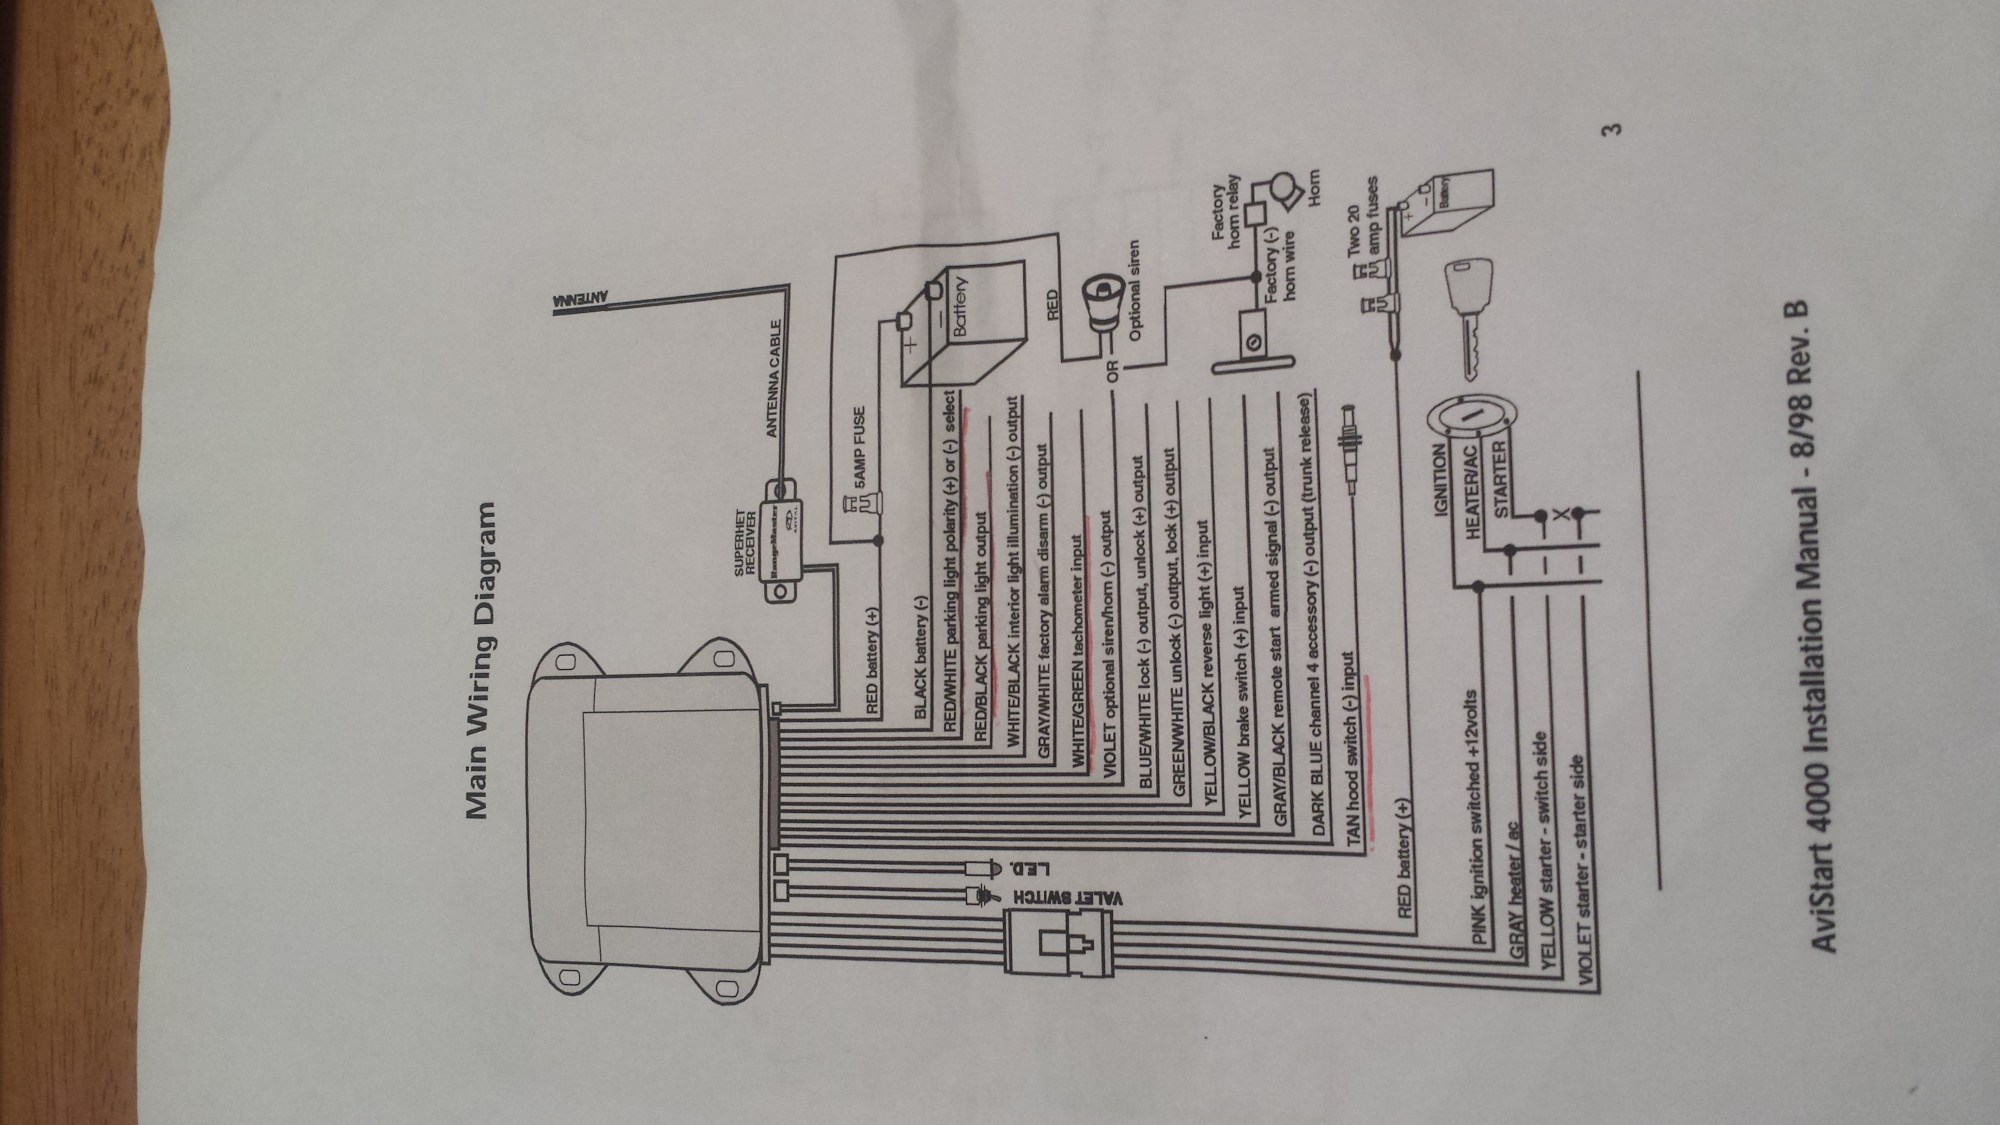 hight resolution of viper 5901 installation diagram wiring diagram query viper 5901 wiring diagram